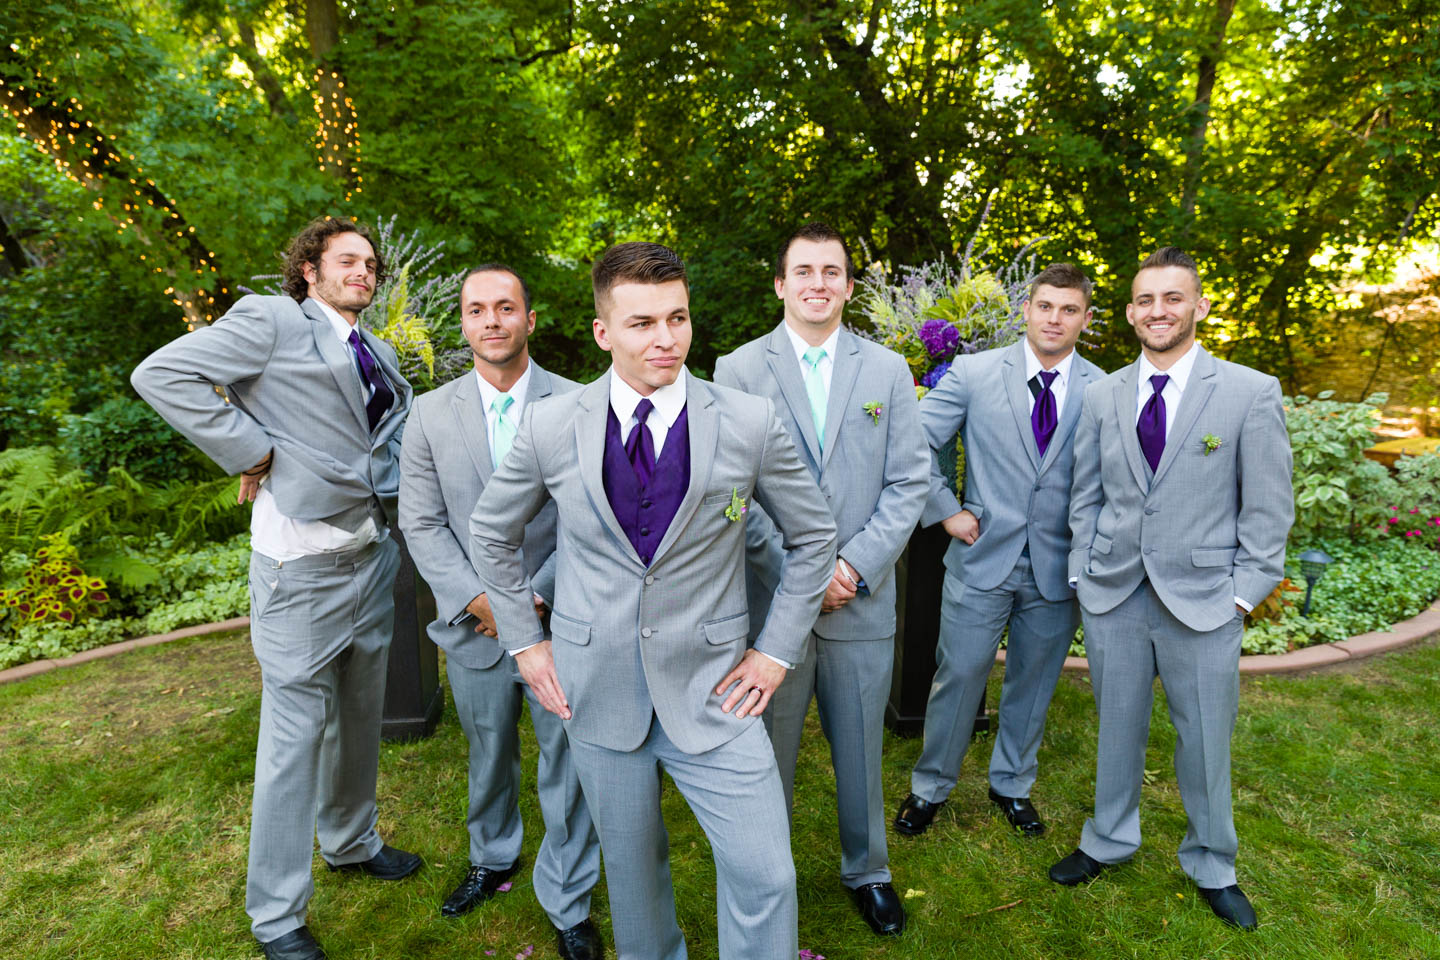 Going for the GQ look with the groomsmen